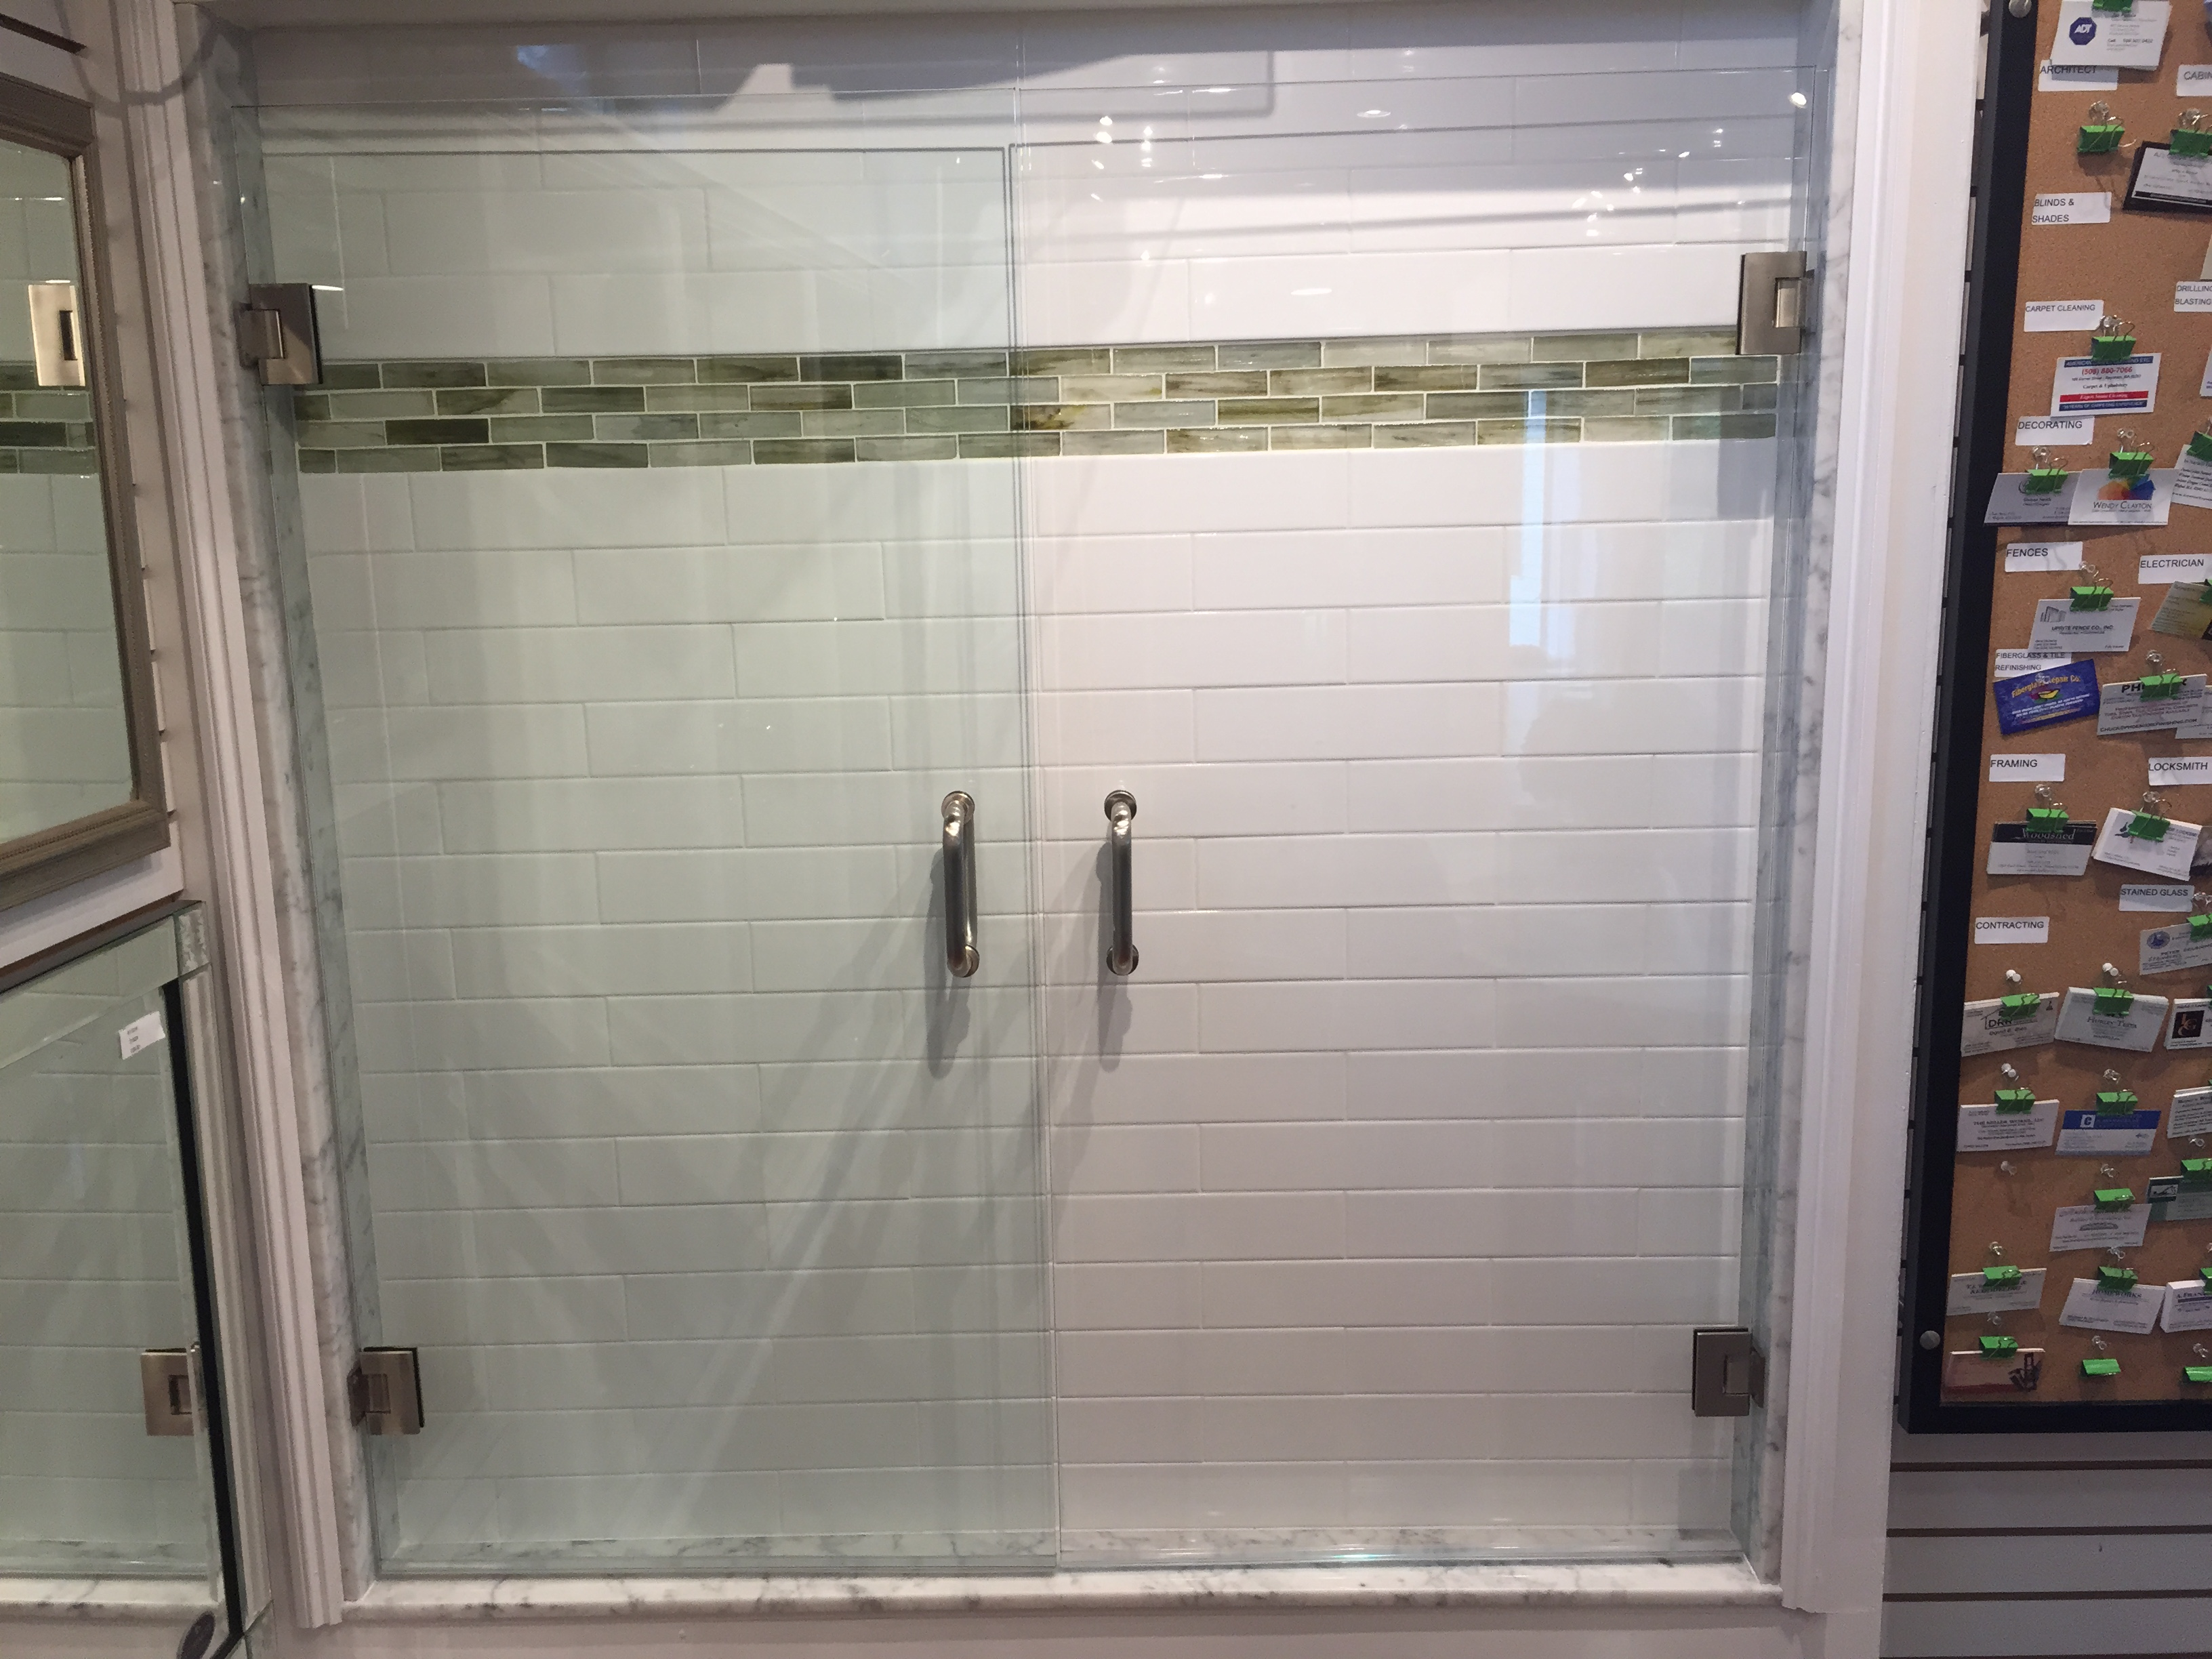 door square glass in renovation with free design rod real standard shower articles winnipeg stall rollers size small your homes barn estate bathroom and id press simplicity style